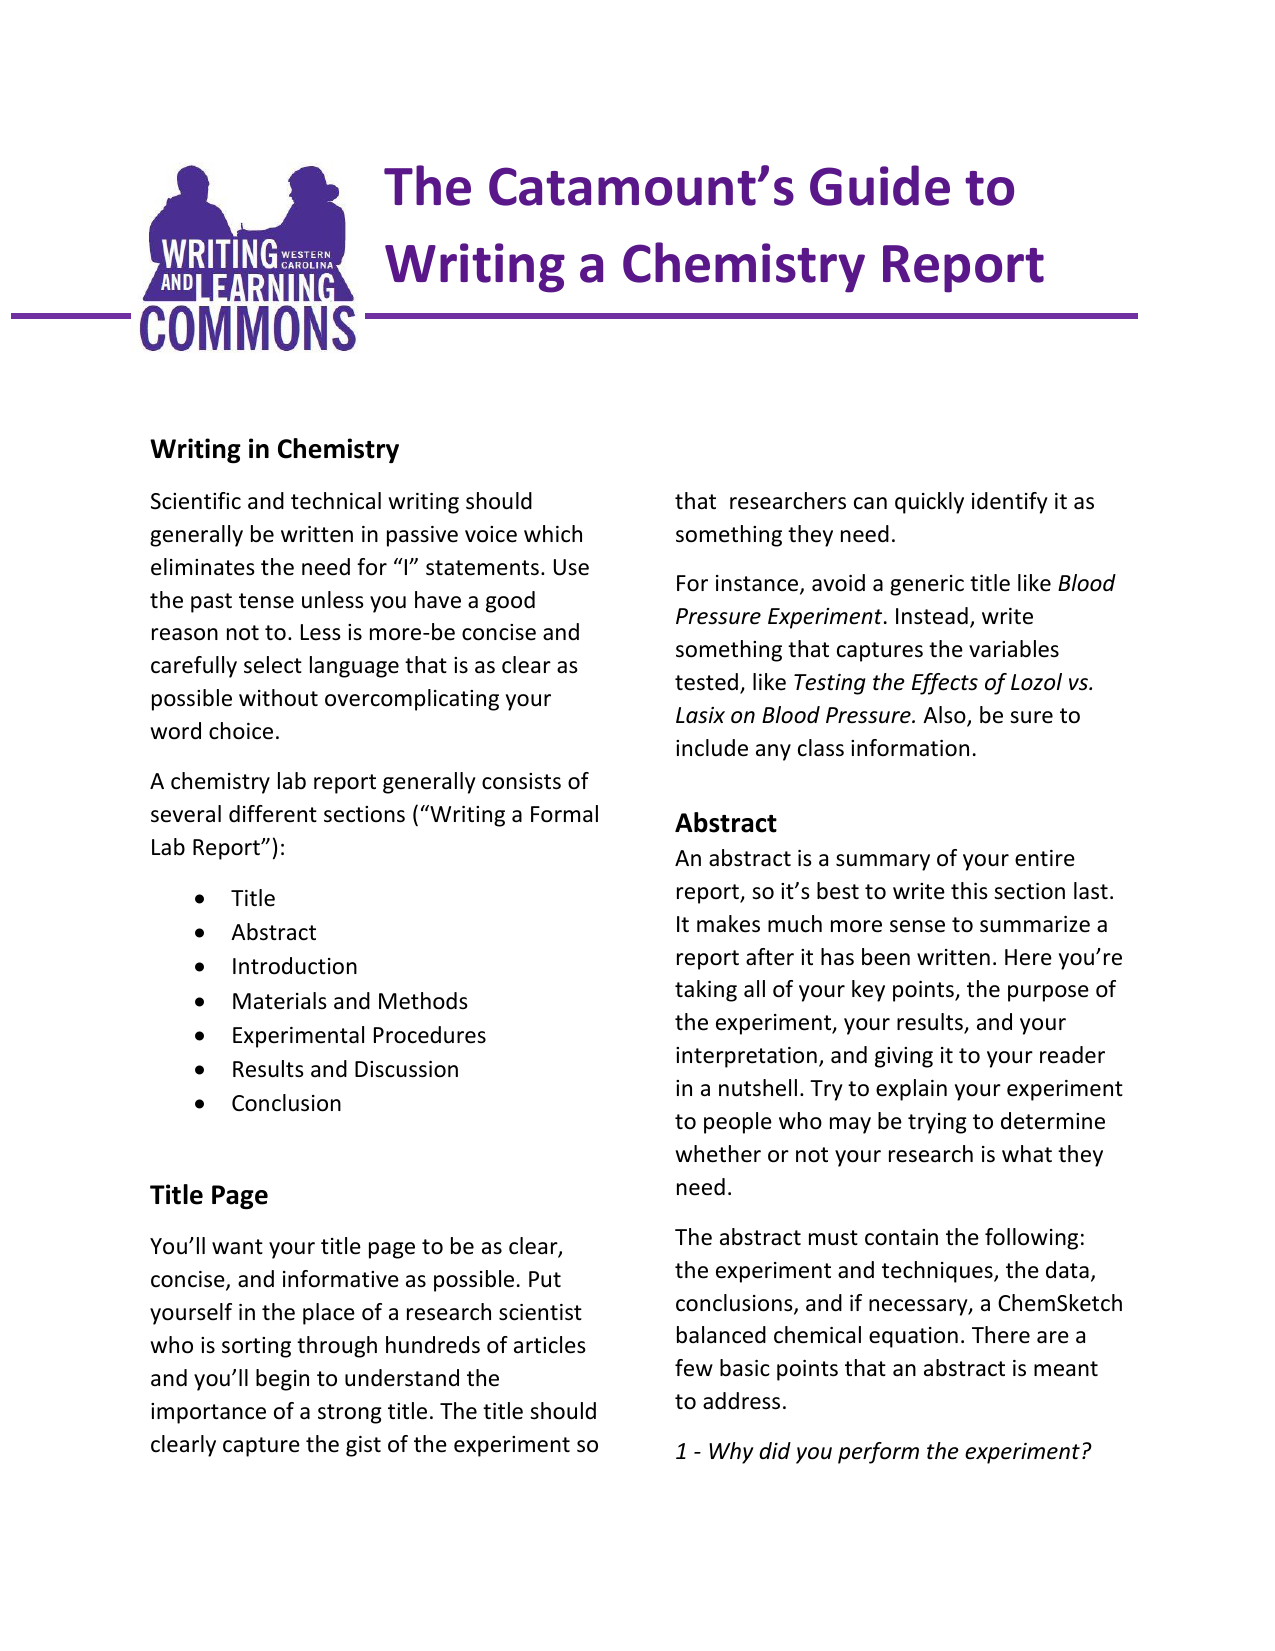 how to write an abstract for a lab report example